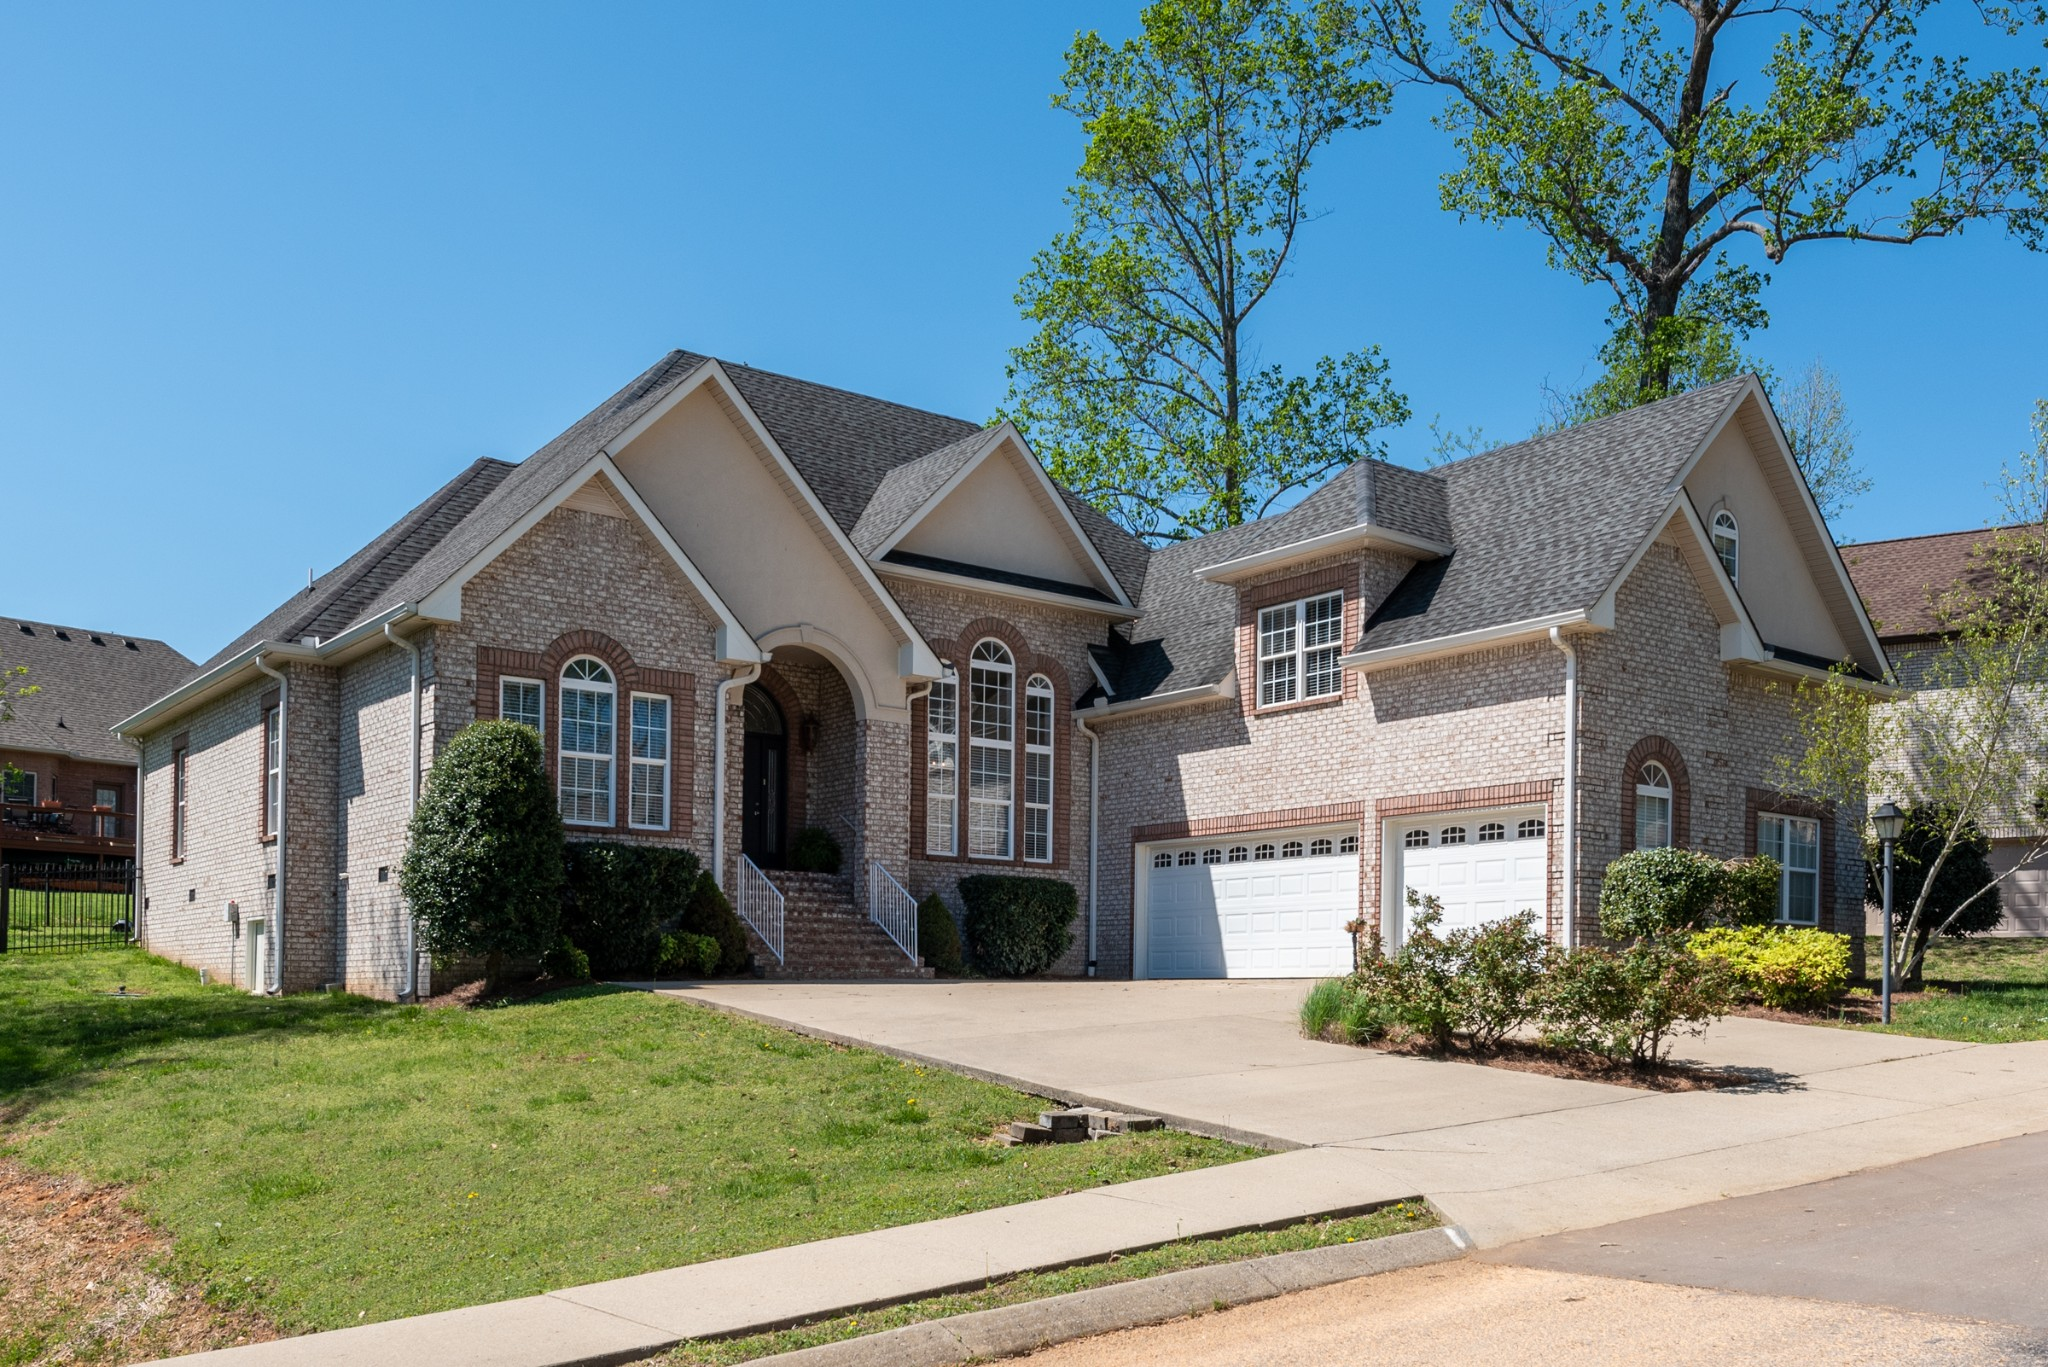 423 Fieldstone Dr Property Photo - White House, TN real estate listing